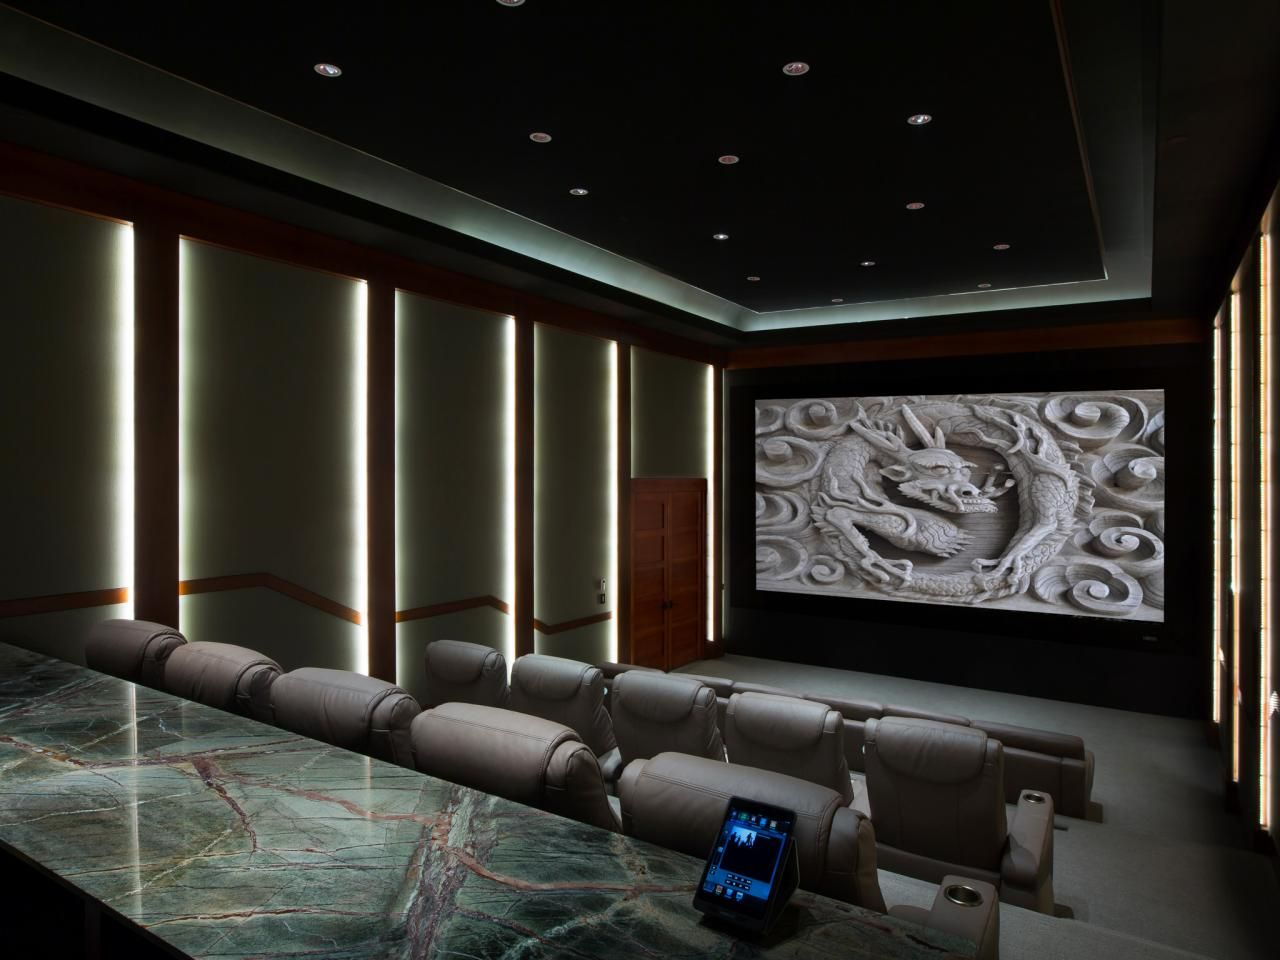 Home theater designs from cedia 2014 finalists home - Interior design for home theatre ...